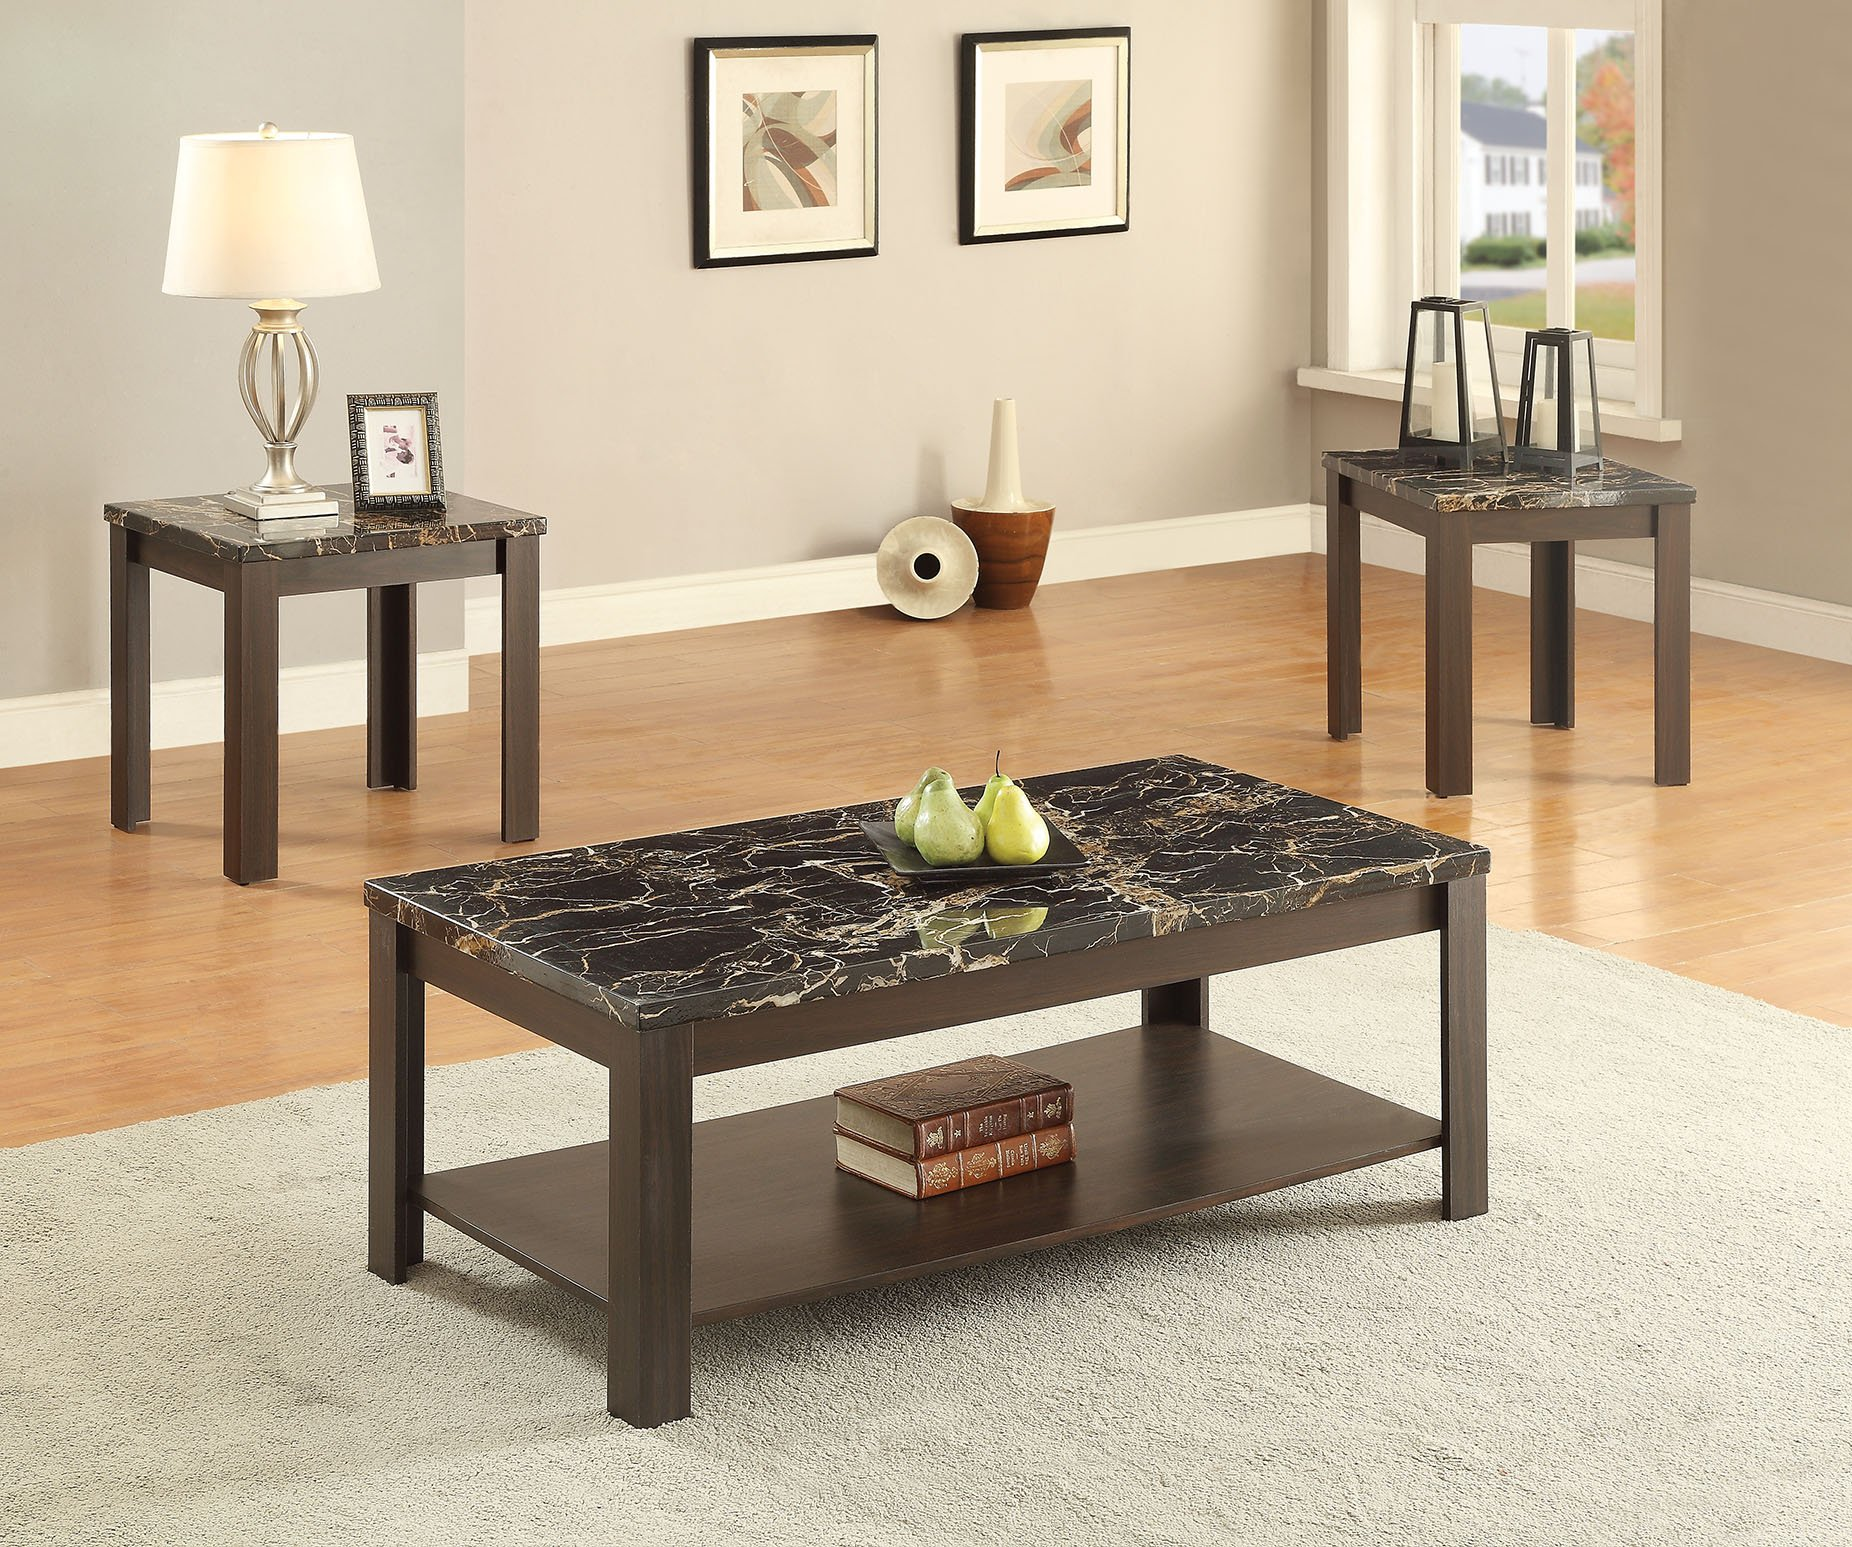 ACME Furniture 82138 3 Piece Afton Coffee/End Table Set, Faux Marble & Walnut